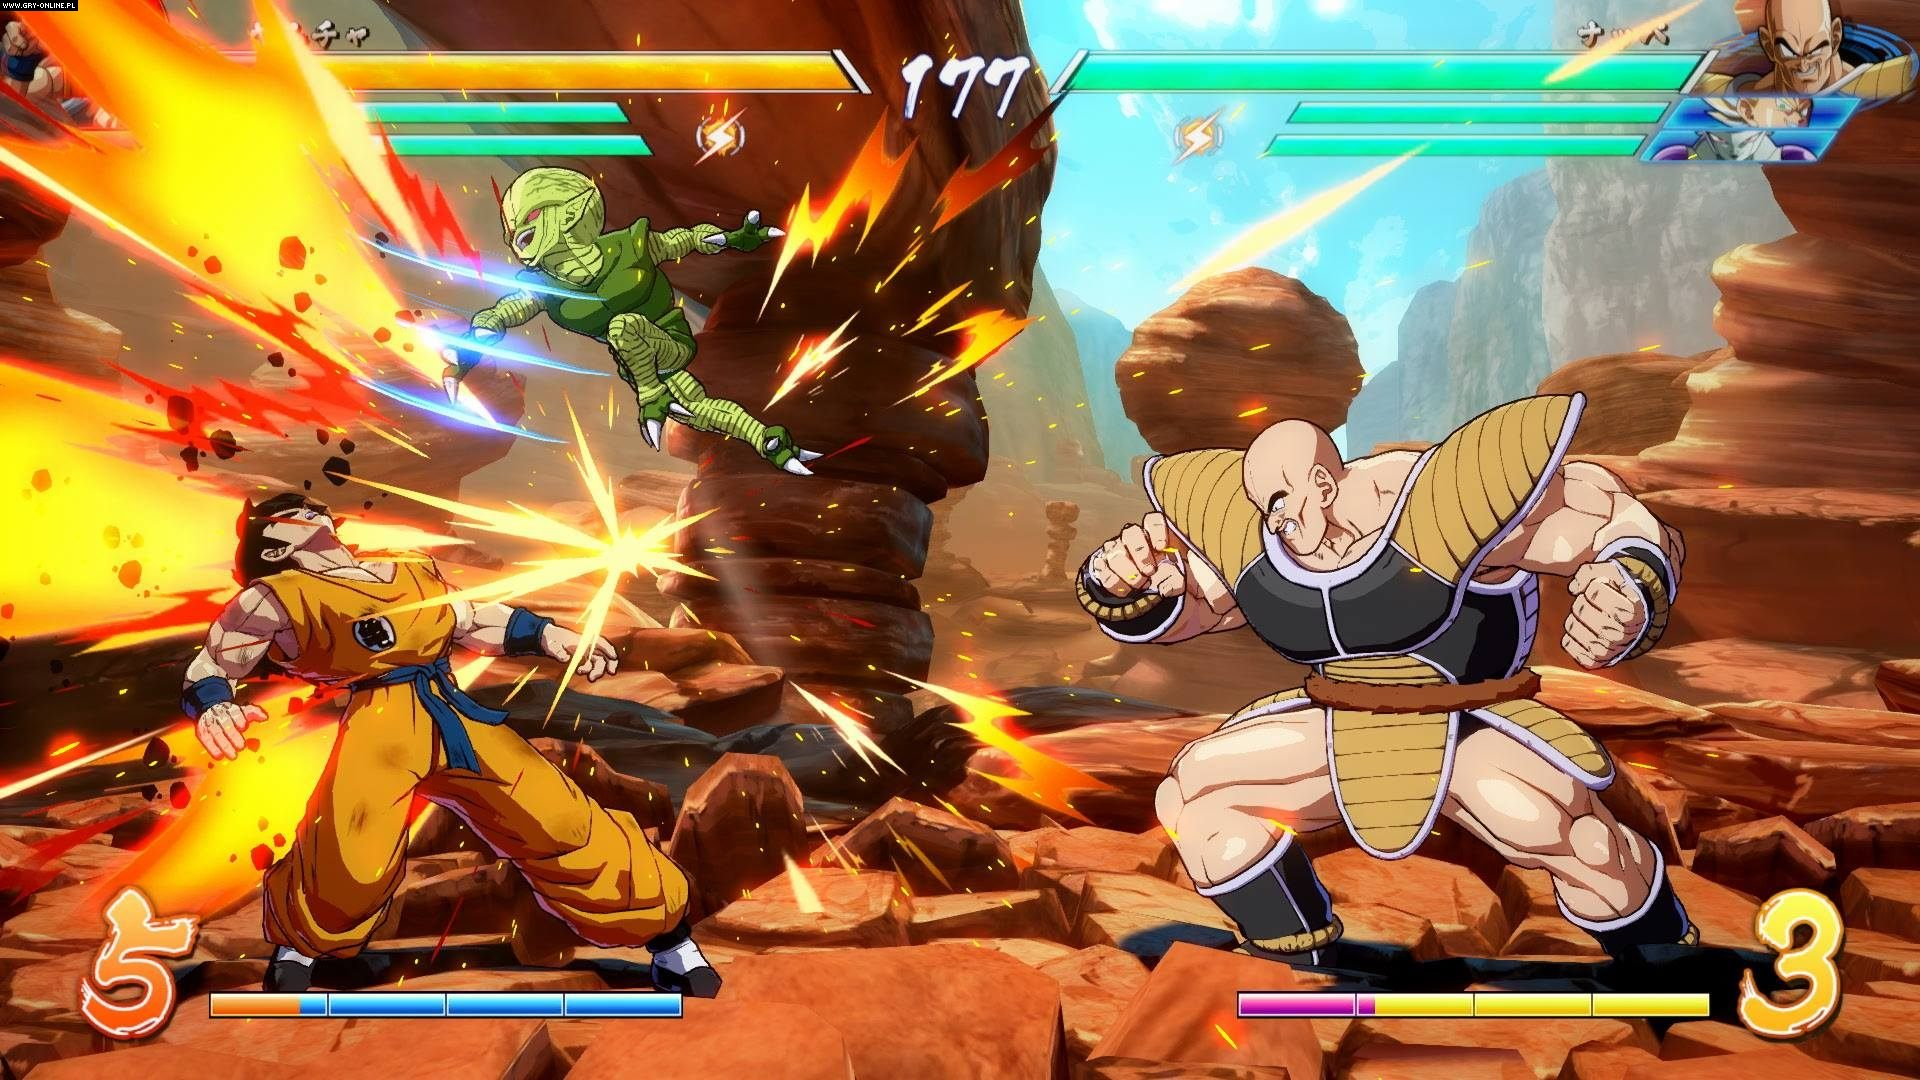 Dragon Ball FighterZ PC, PS4, XONE, Switch Gry Screen 167/230, Arc System Works, Bandai Namco Entertainment